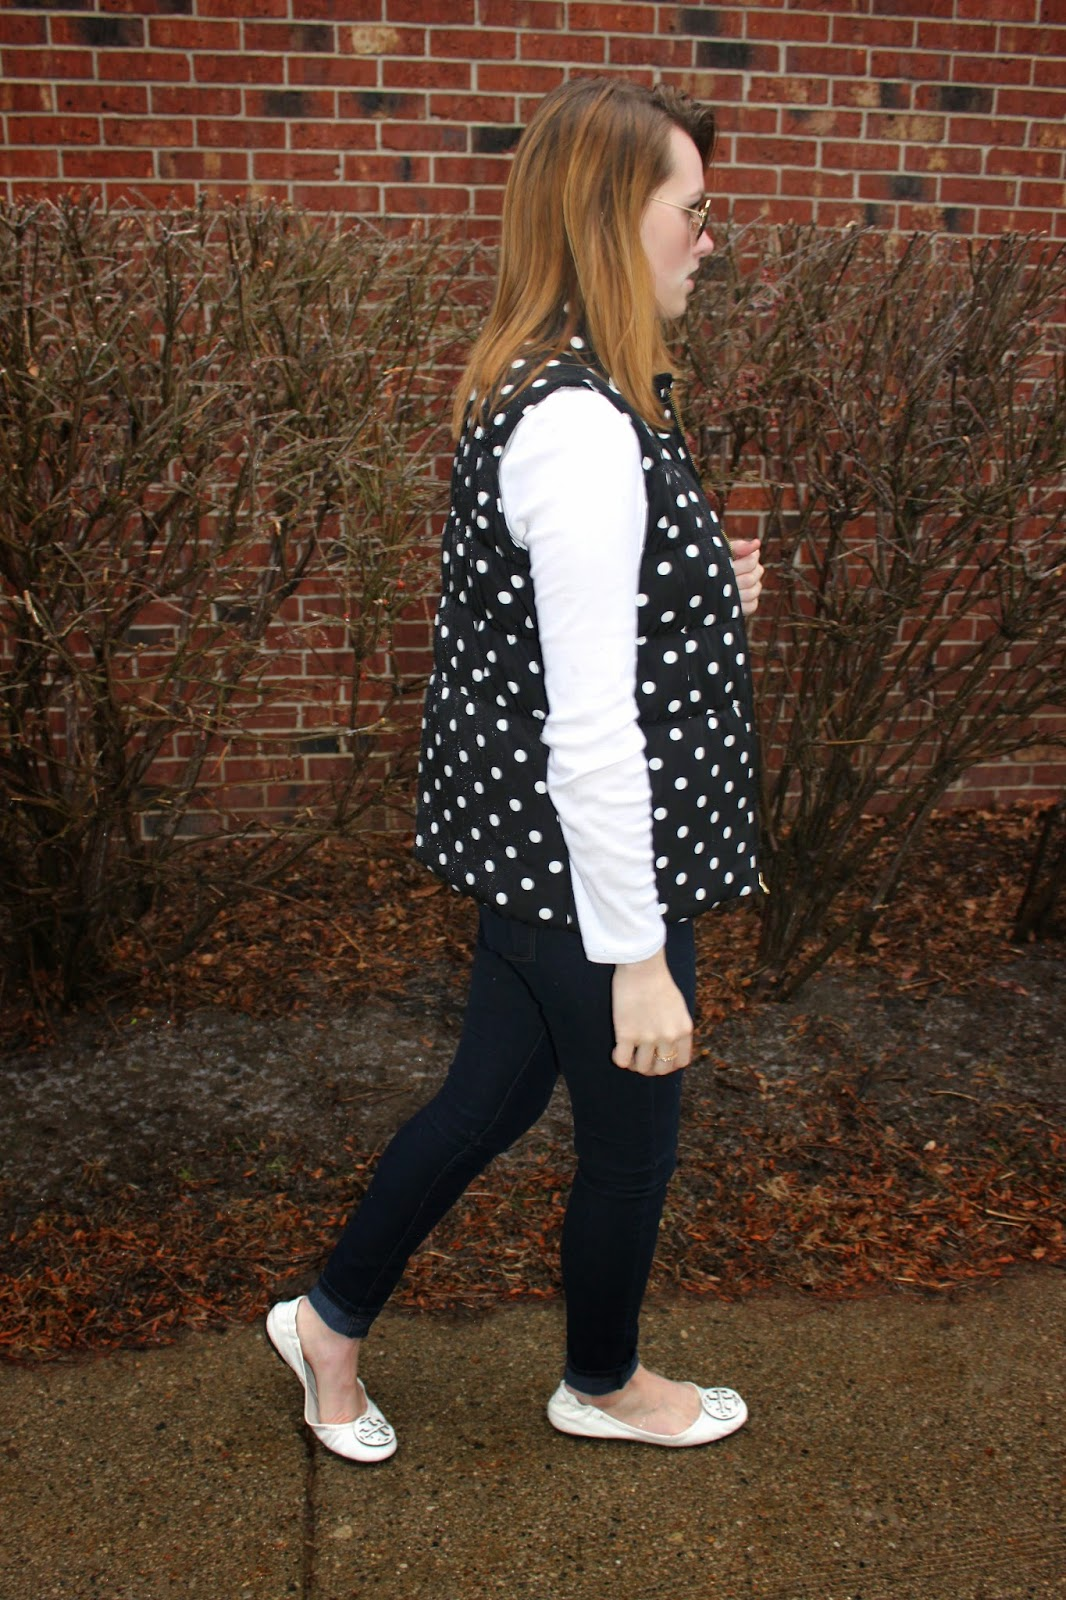 9abda6eeb73835 What I Wore  Top  Old Navy Perfect Shirt   Vest  Target Polka Dot Vest    Jeans  Forever 21 Jeans   Shoes  Tory Burch Reva Flats (Similar)    Necklace  Bow ...